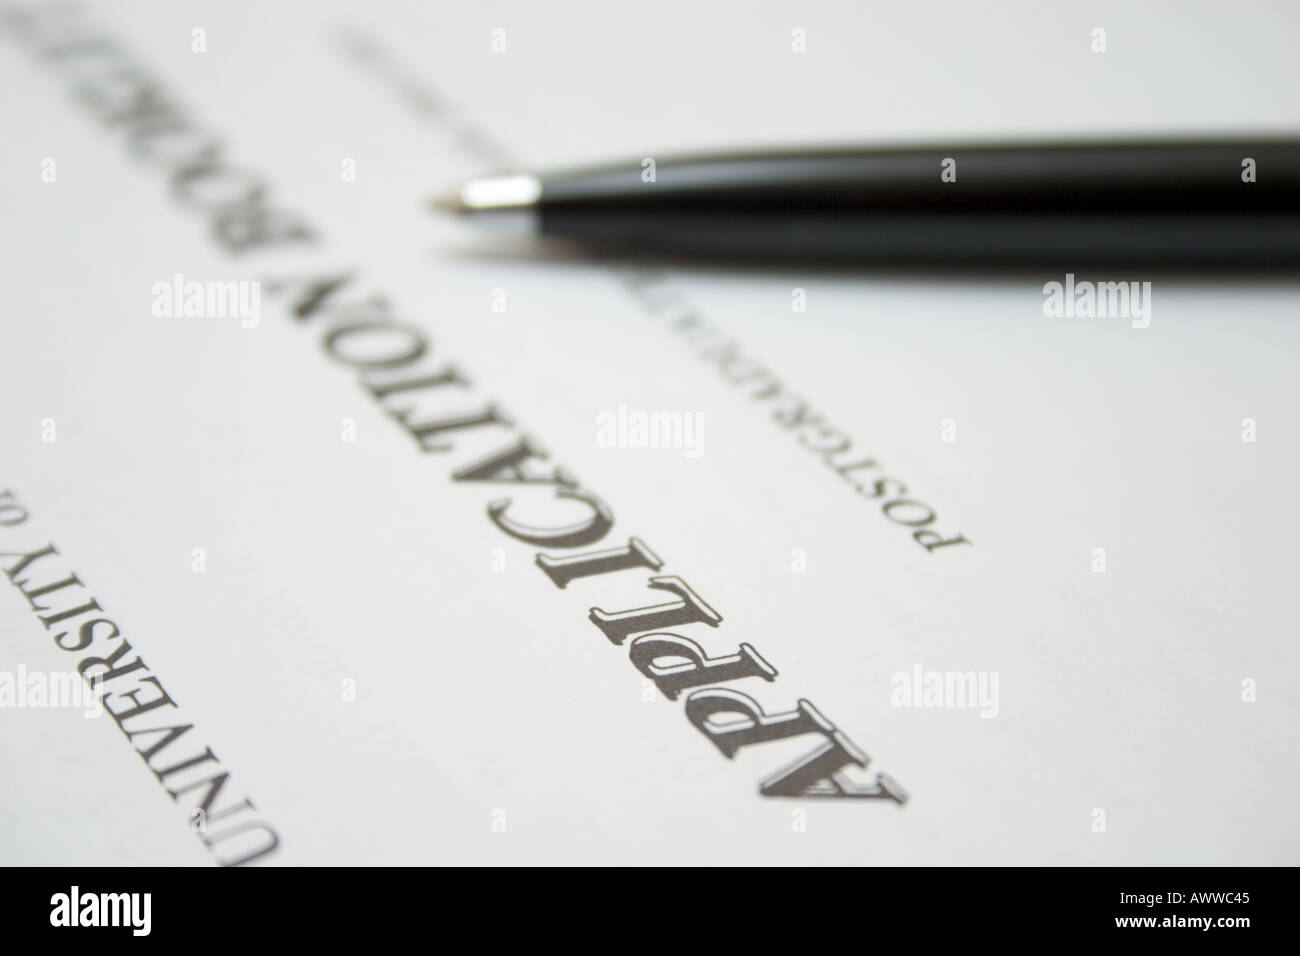 application form for university admission with pen - Stock Image